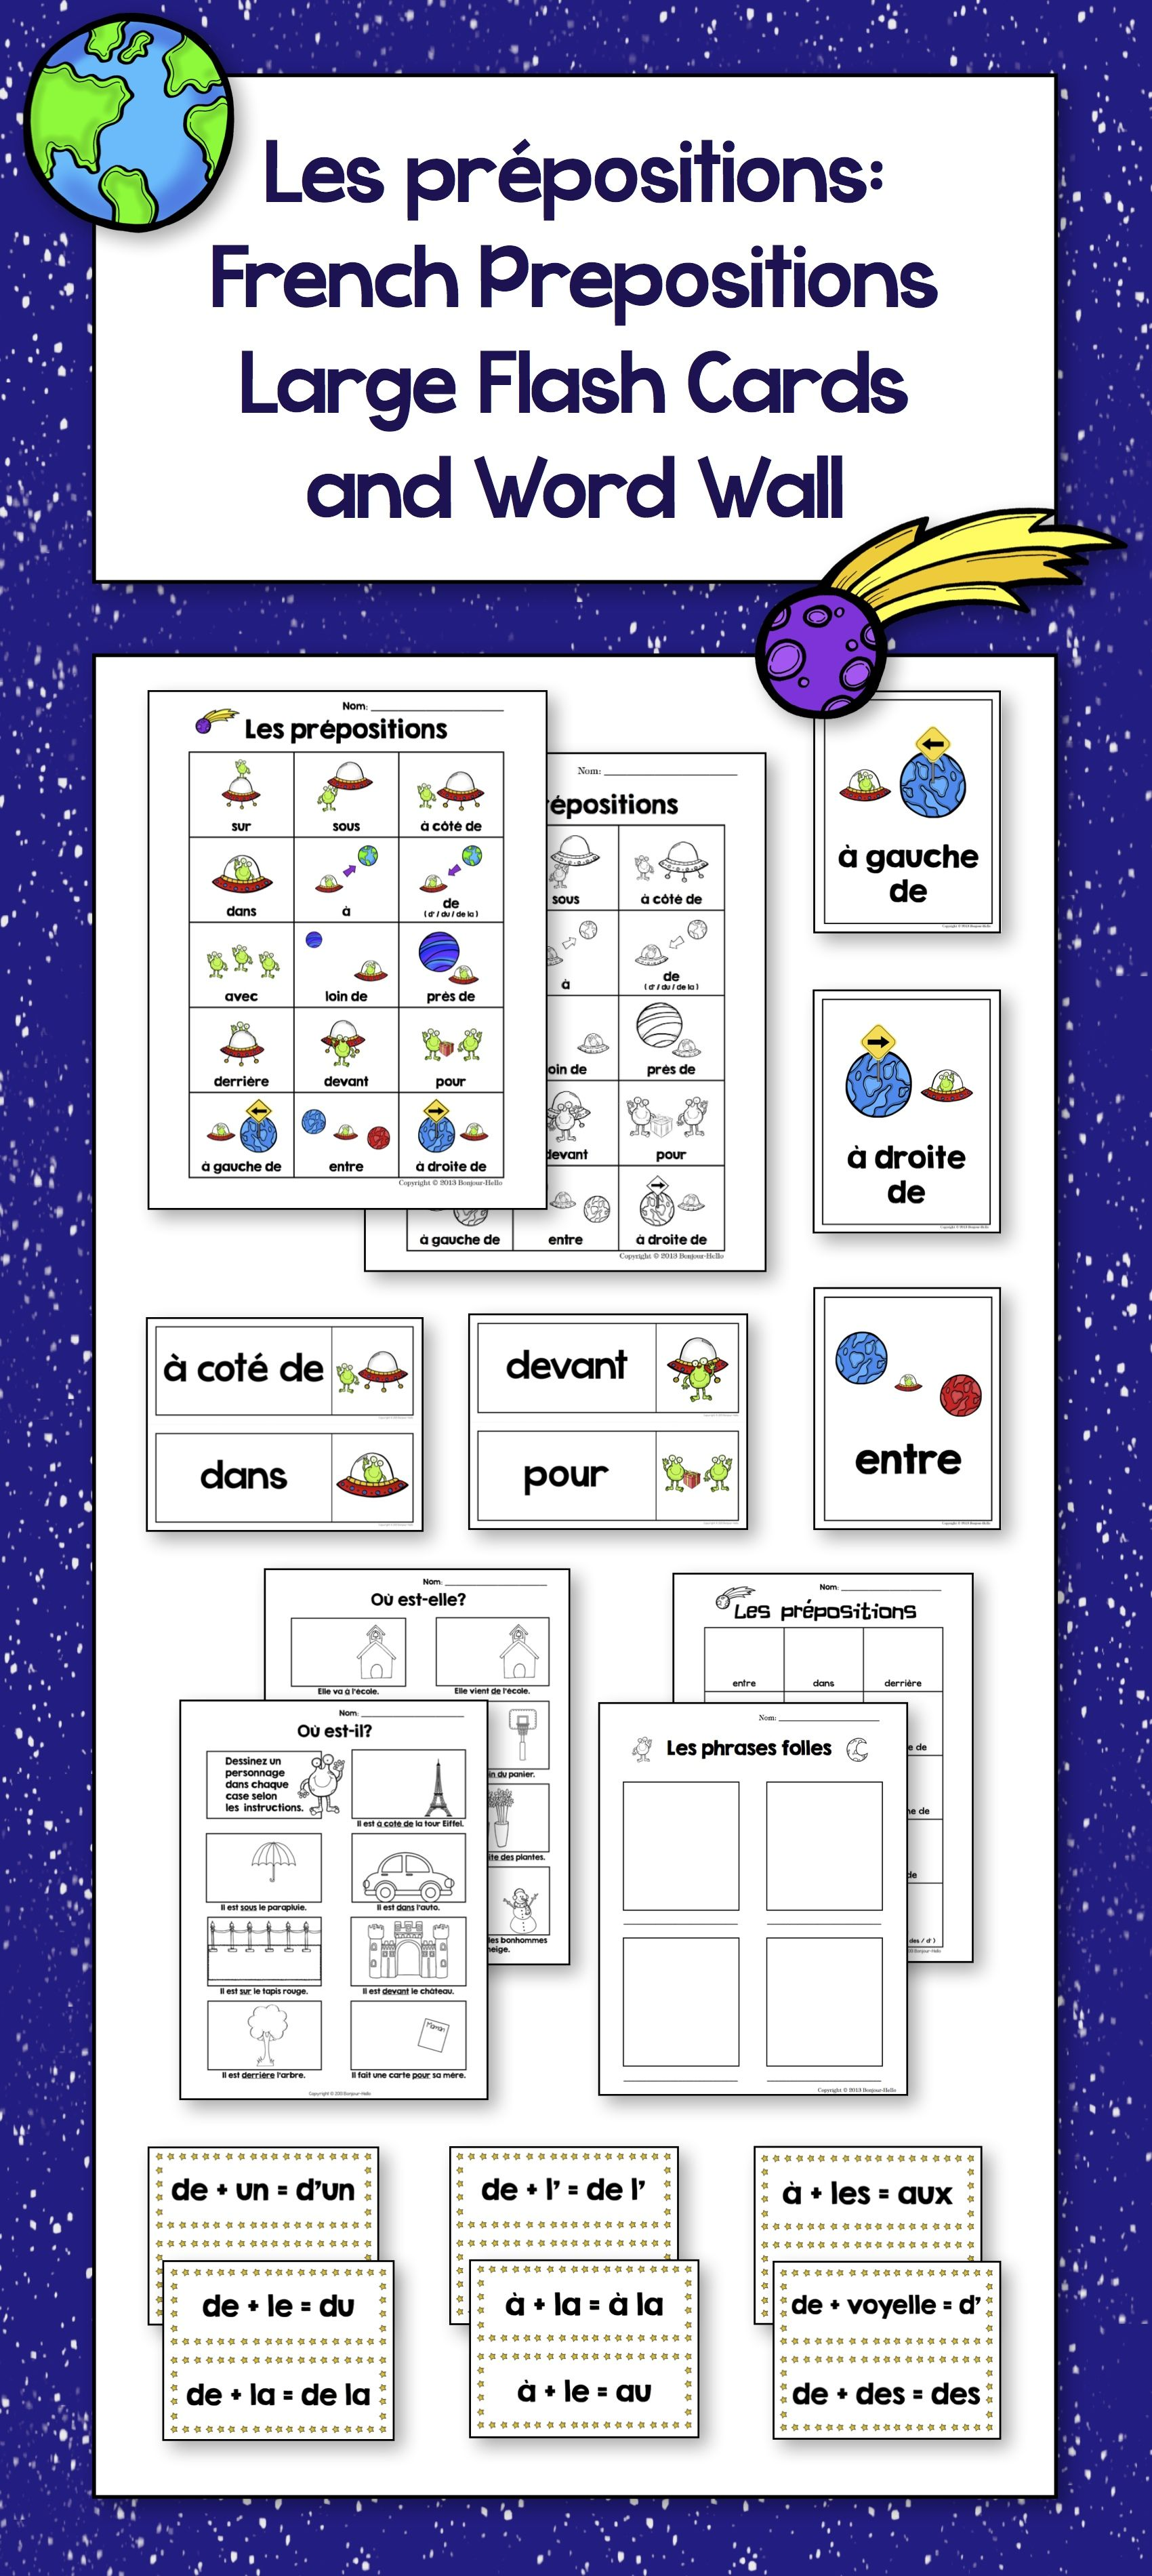 Les Prepositions French Prepositions Large Flash Cards And Word Wall